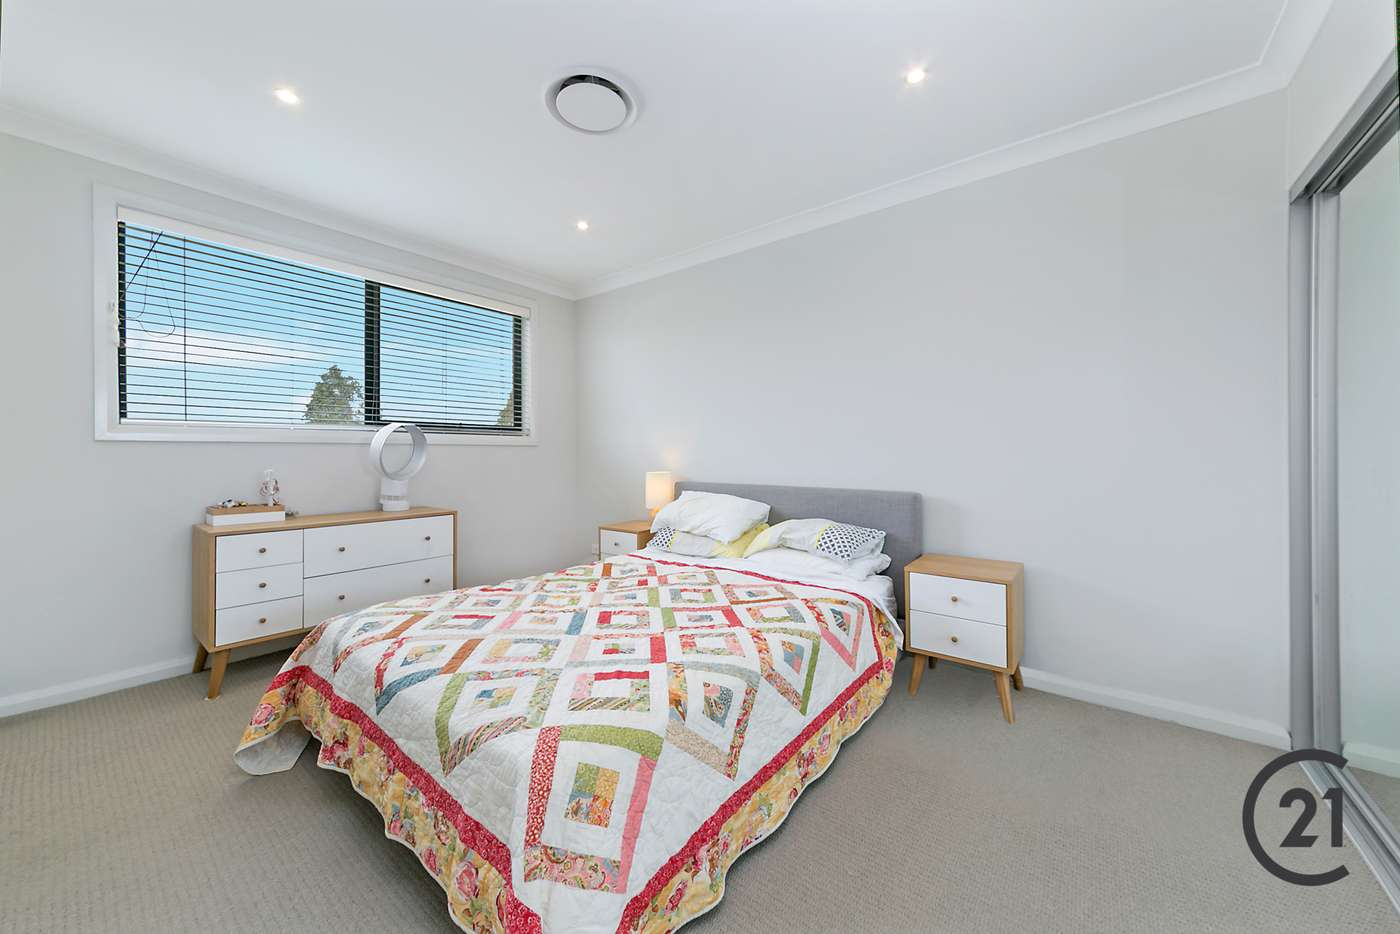 Sixth view of Homely house listing, 1 Gabi Glade, Kellyville Ridge NSW 2155